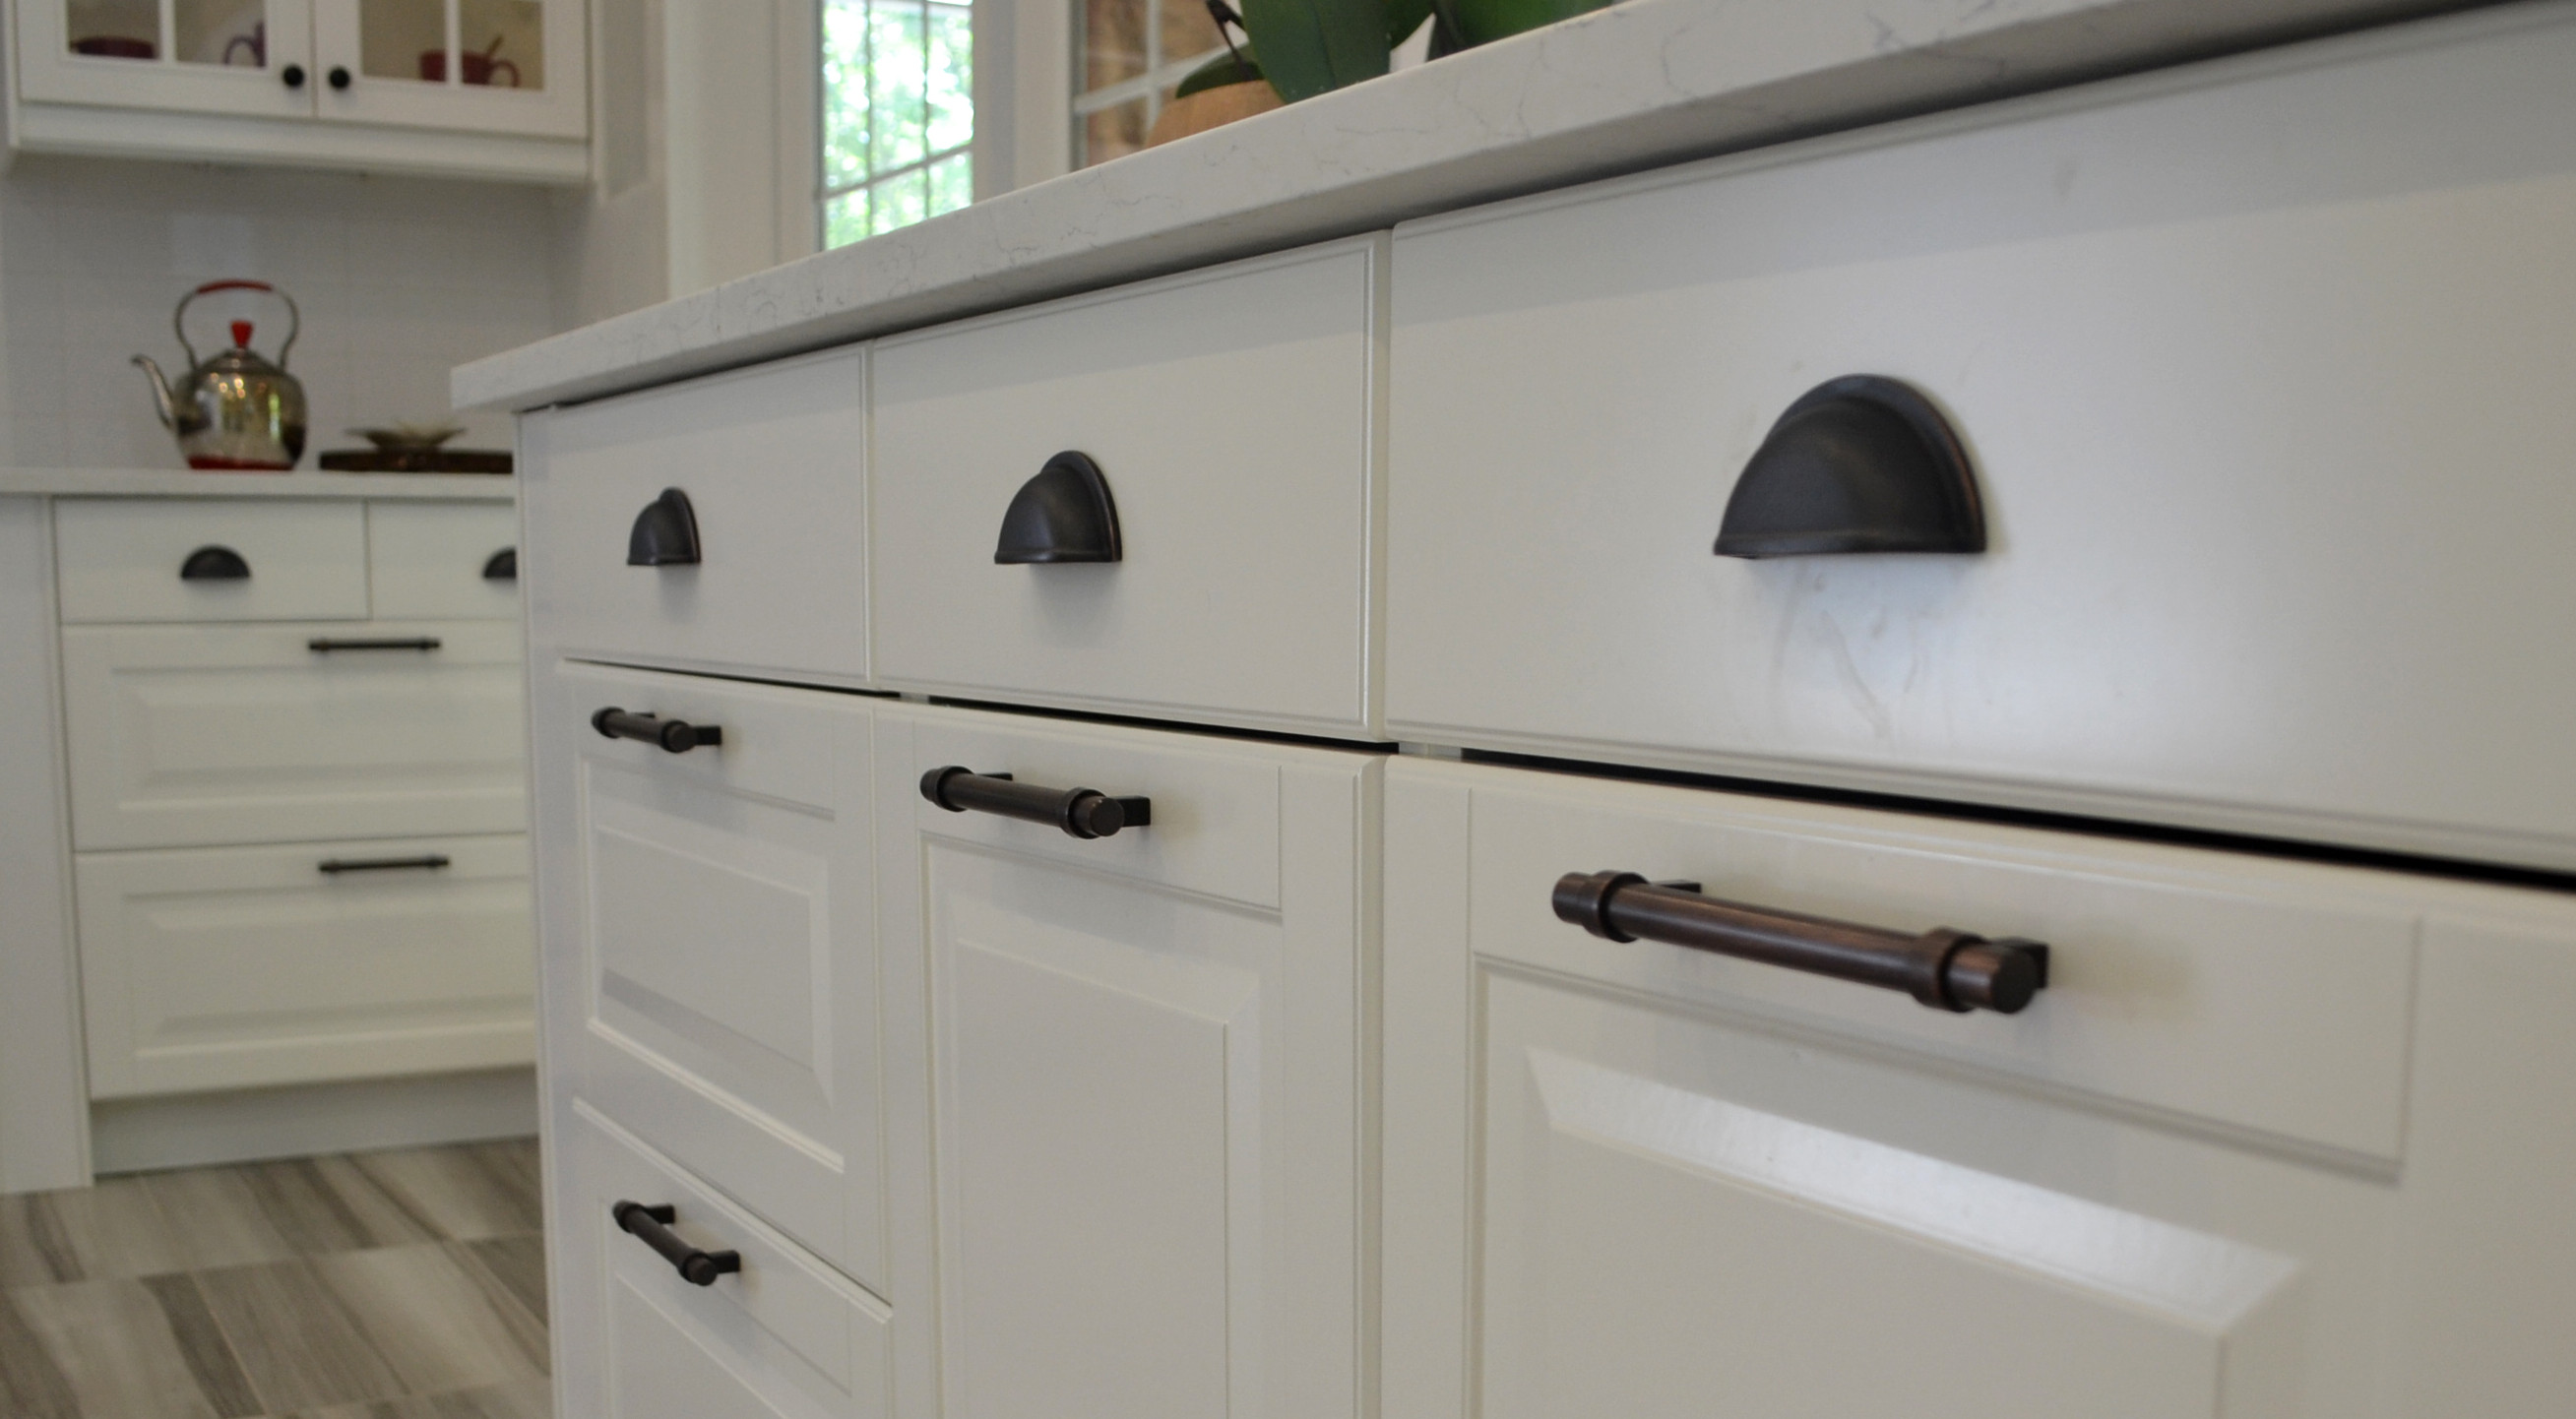 Kitchen Cupboard Off White Handles